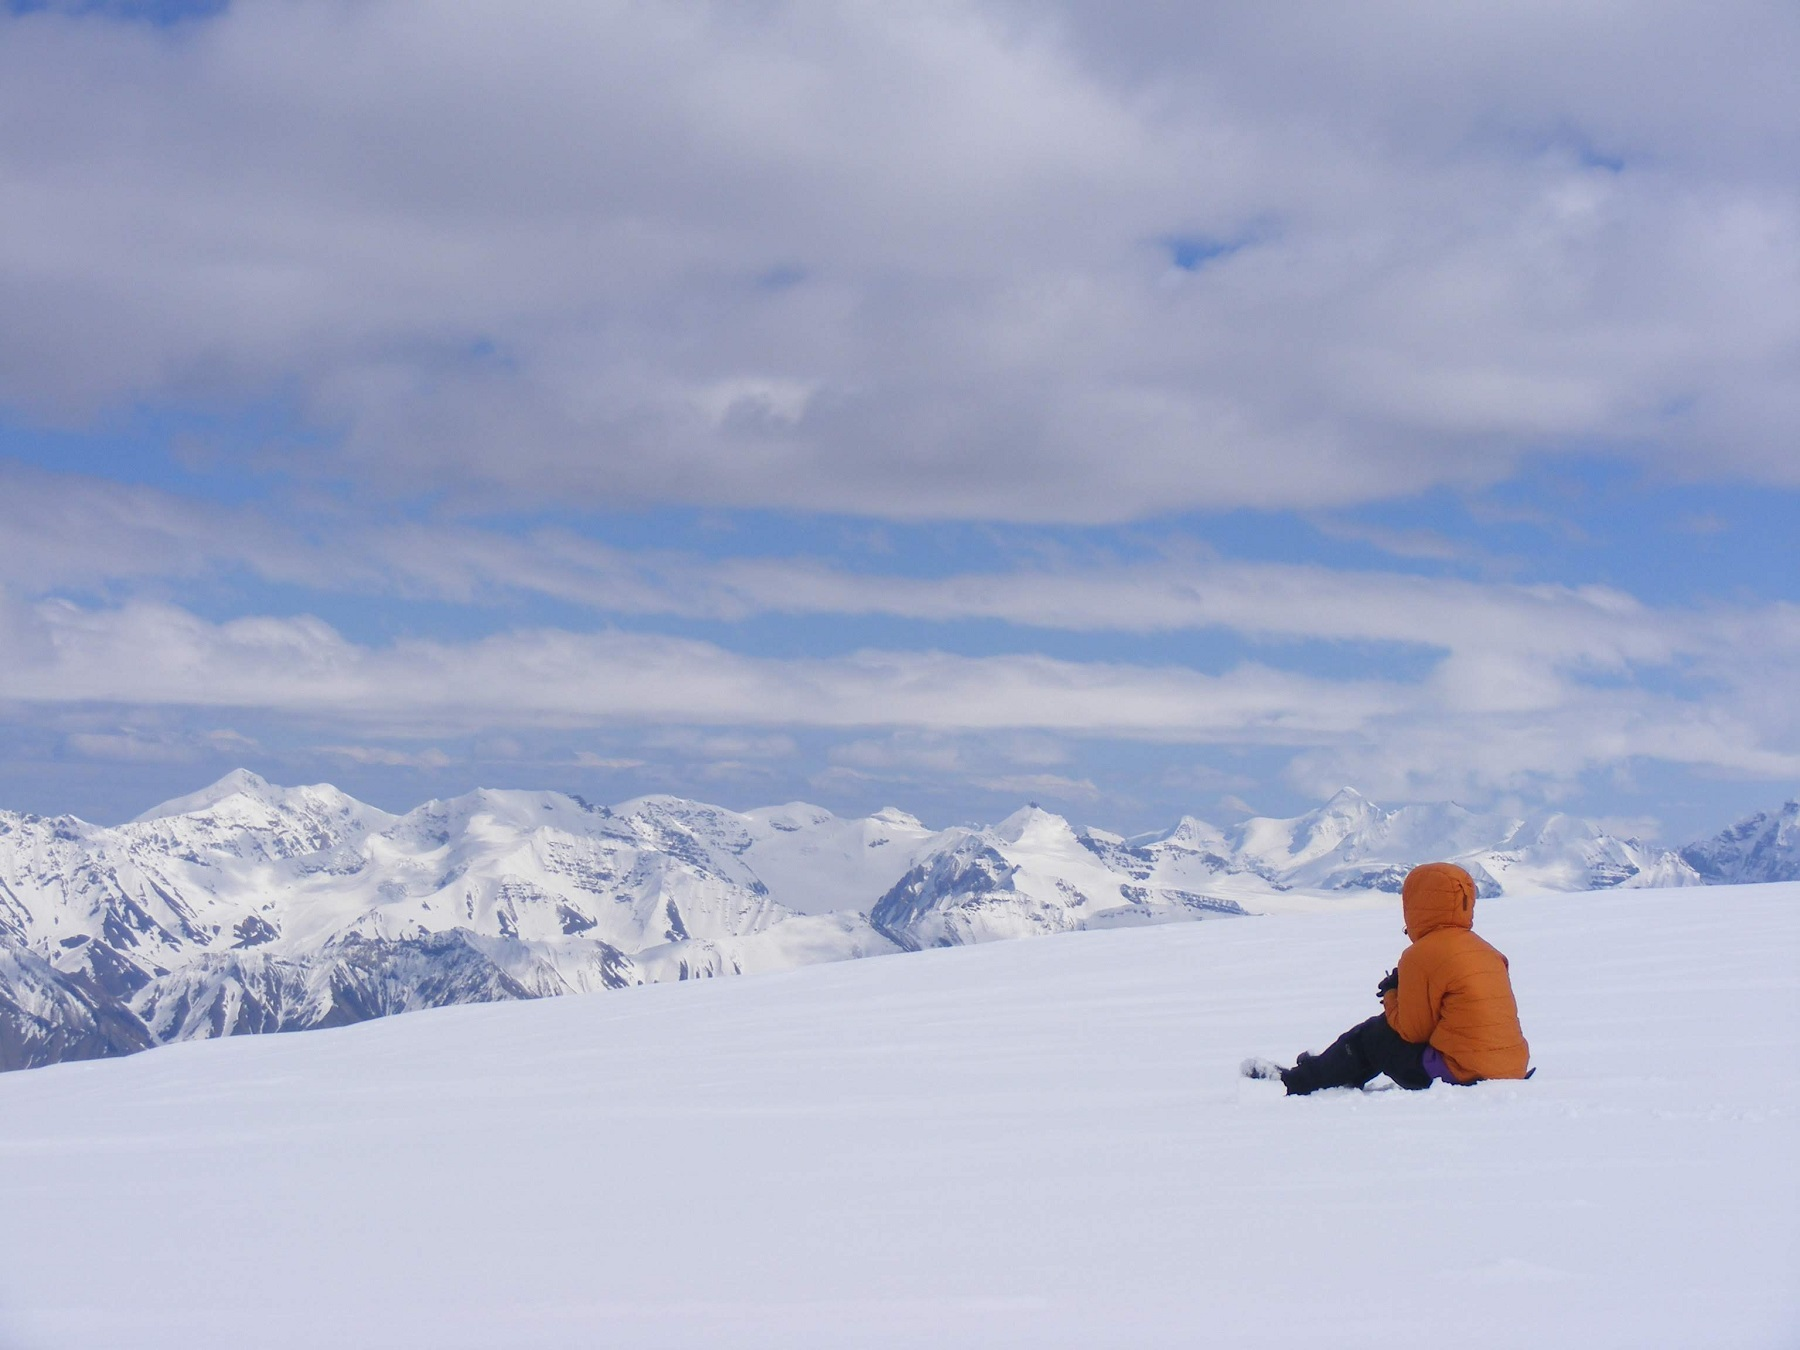 Person in coat on snow looking at snowy mountains